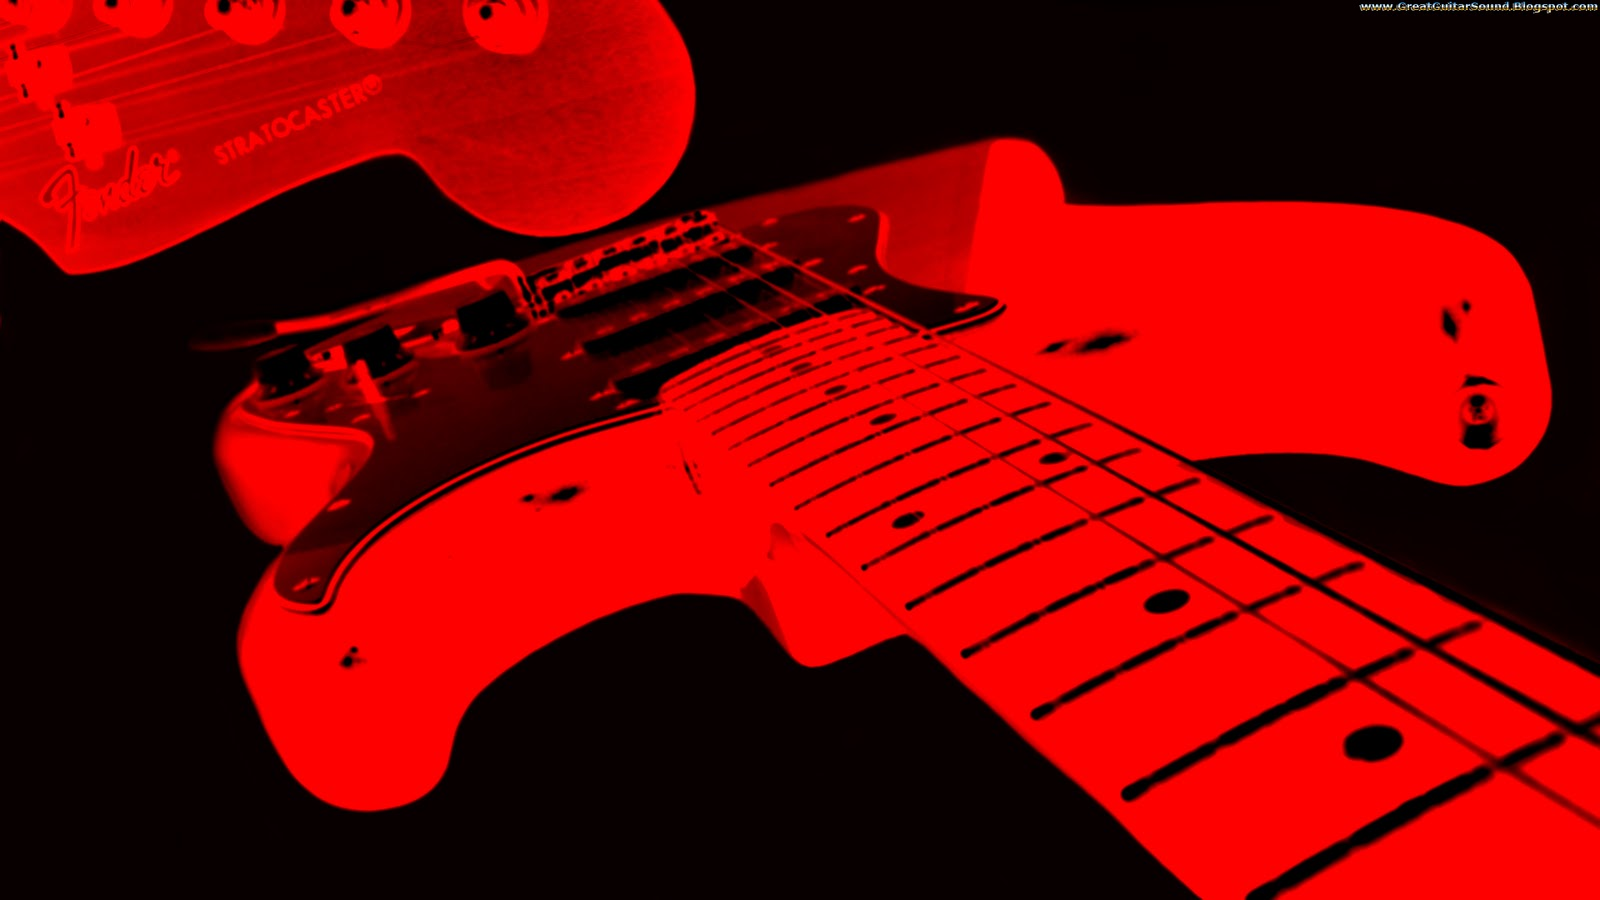 Red And Black Fender Stratocaster Electric Guitar Background HD Music Desktop Wallpaper 1920x1080 Great Sound GreatGuitarSound